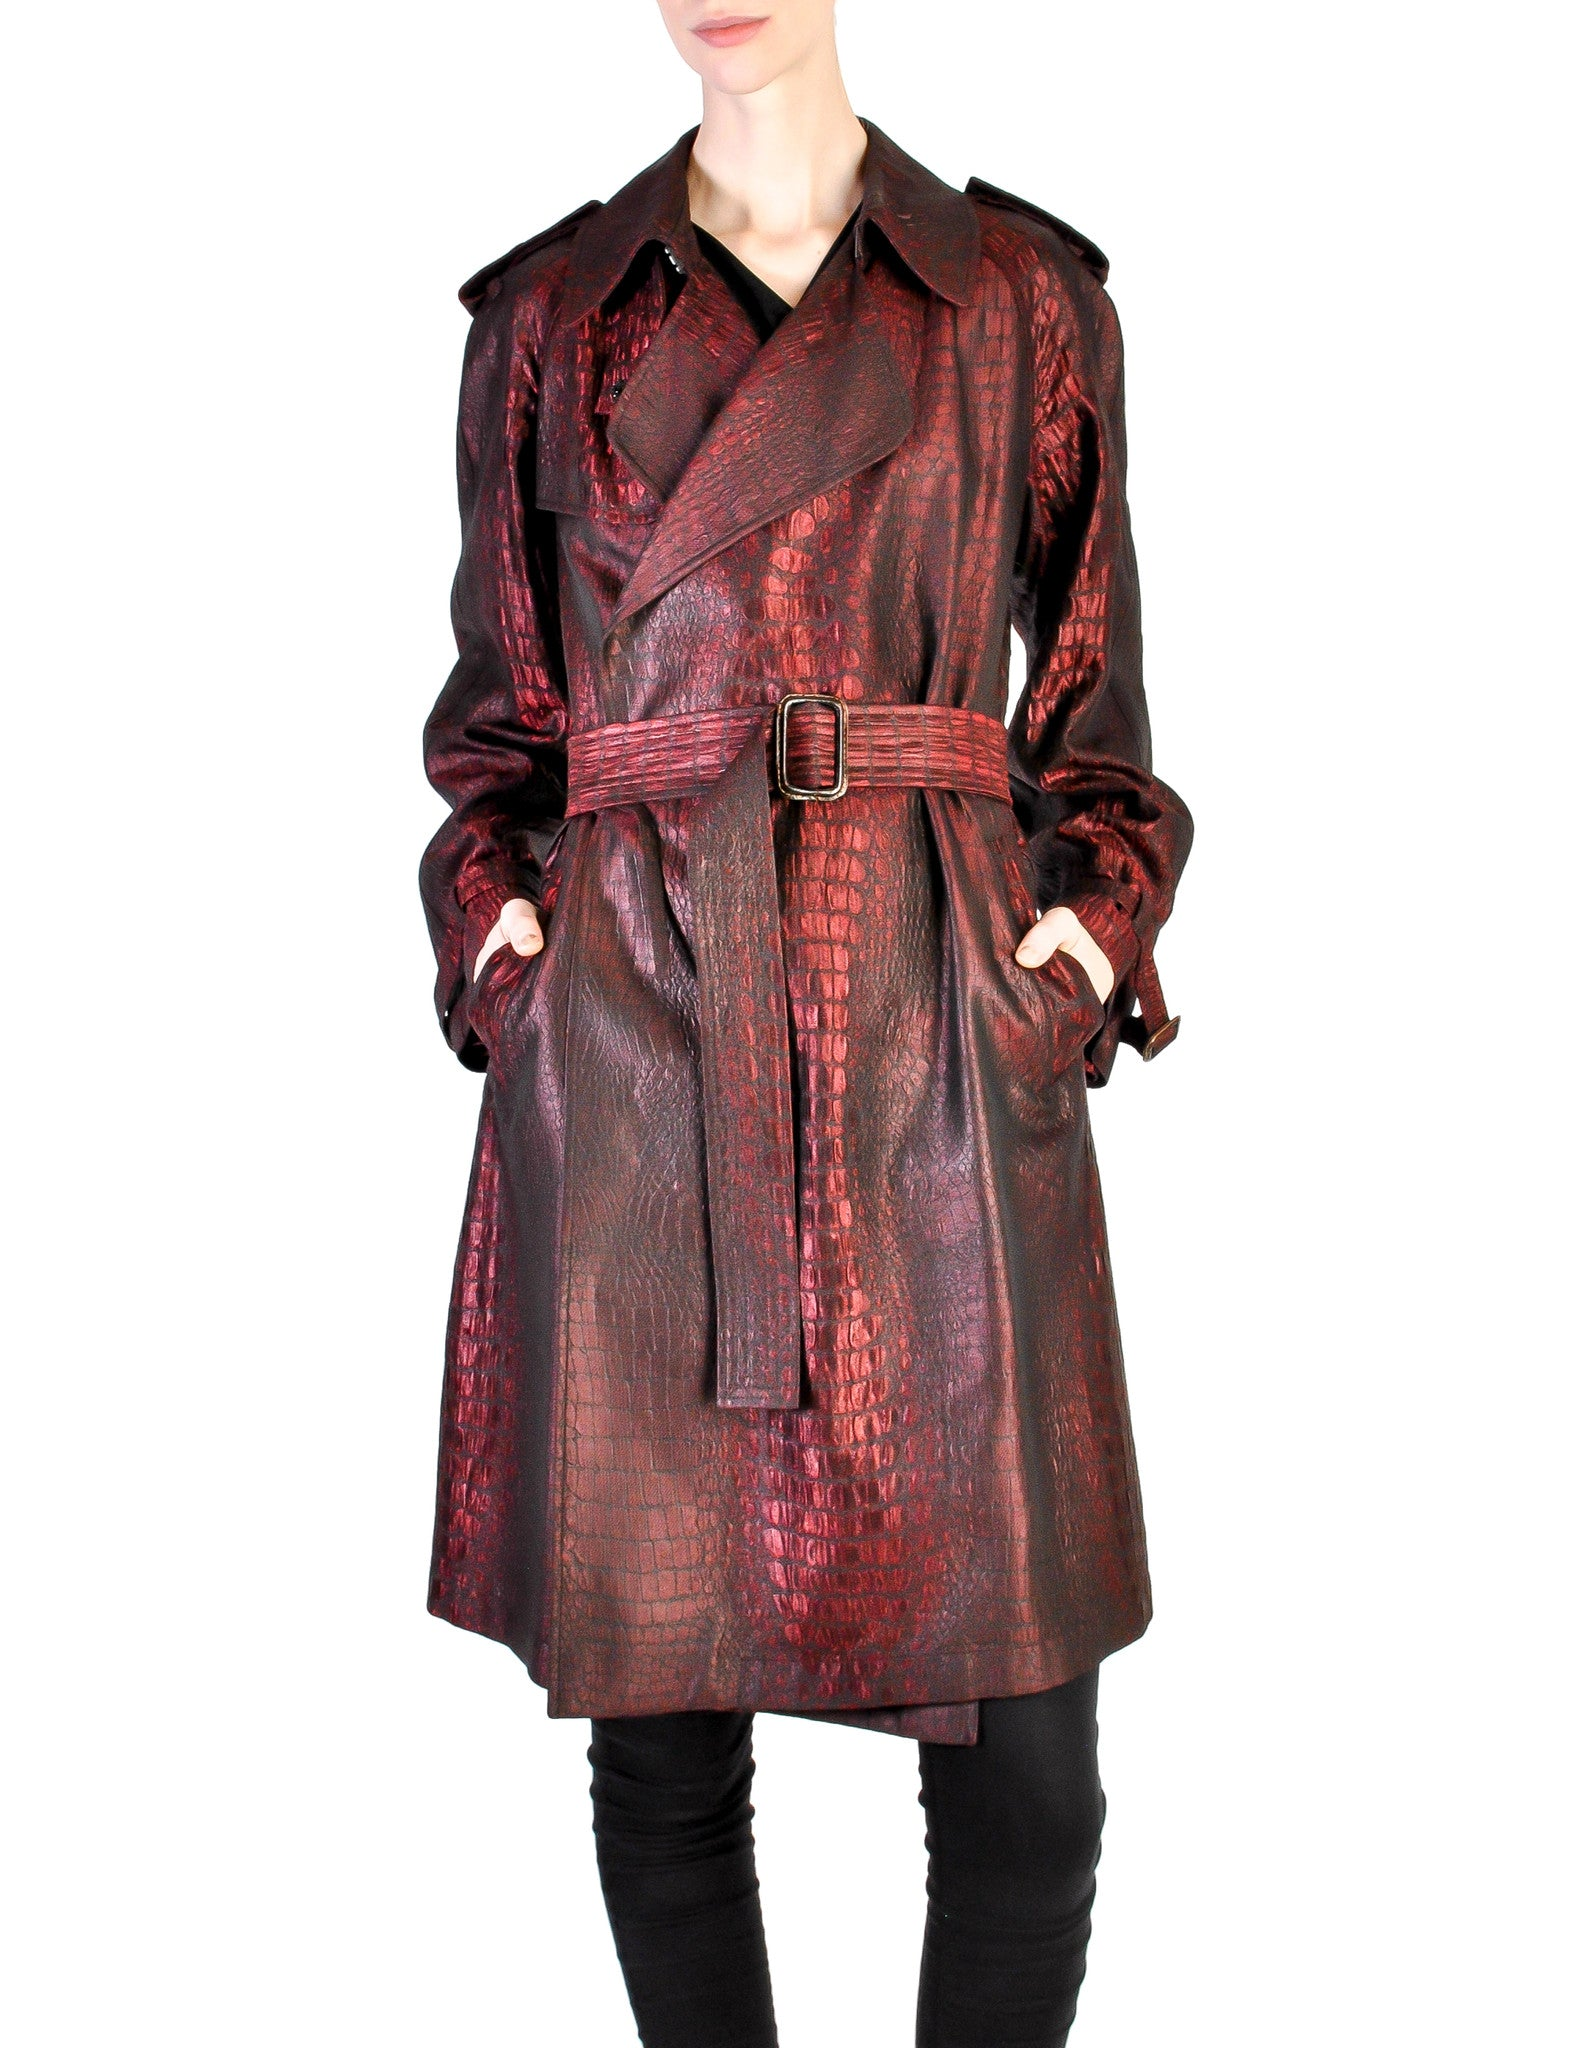 Jean Paul Gaultier Vintage Metallic Maroon Alligator Print Trench Coat - Amarcord Vintage Fashion  - 1